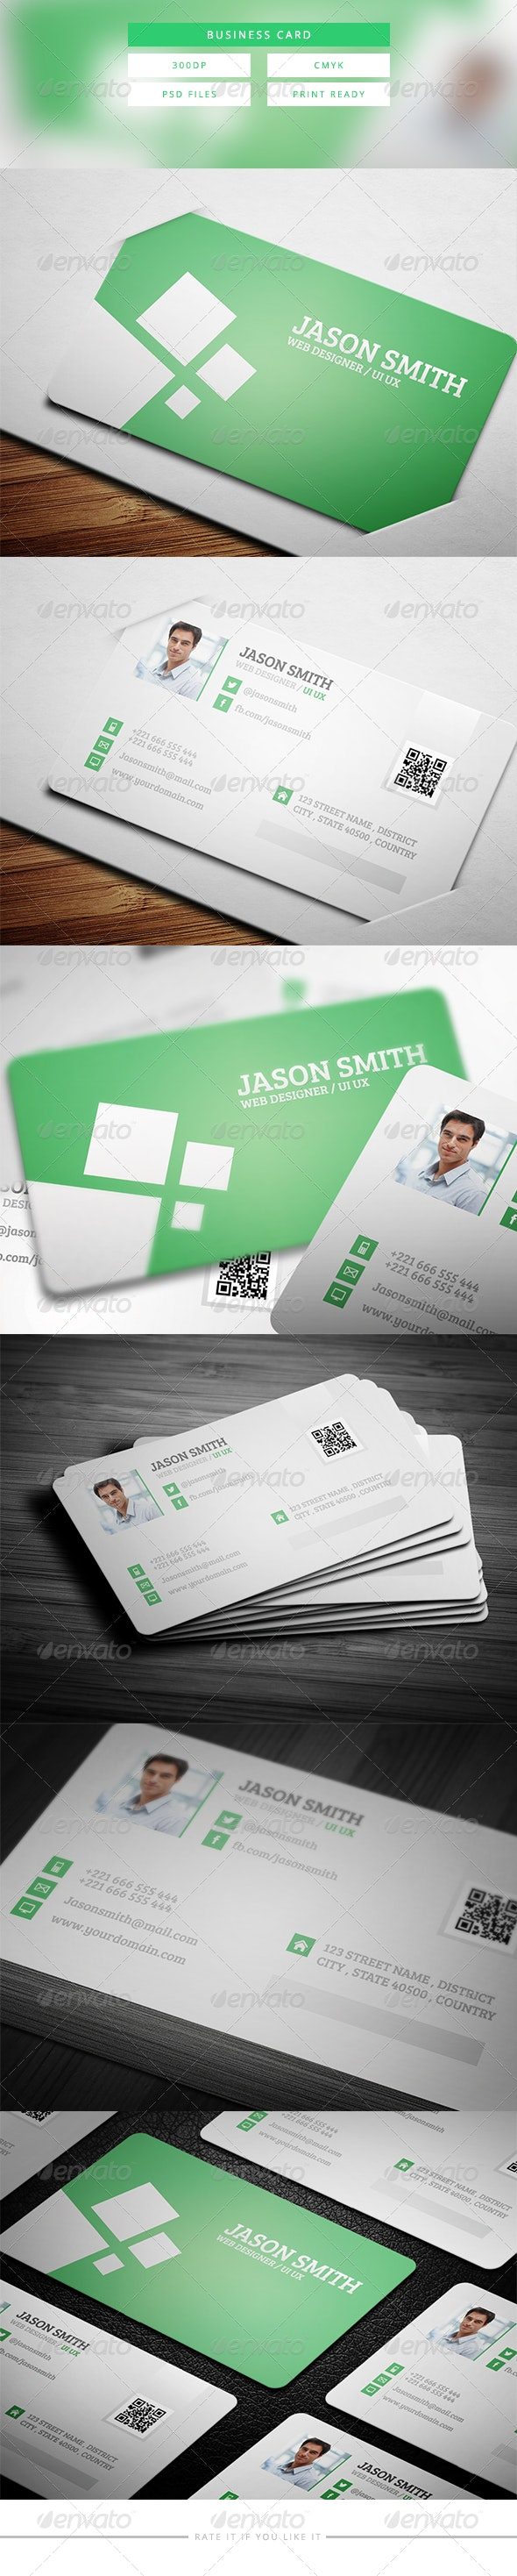 Creative Business Card 6 - Creative Business Cards